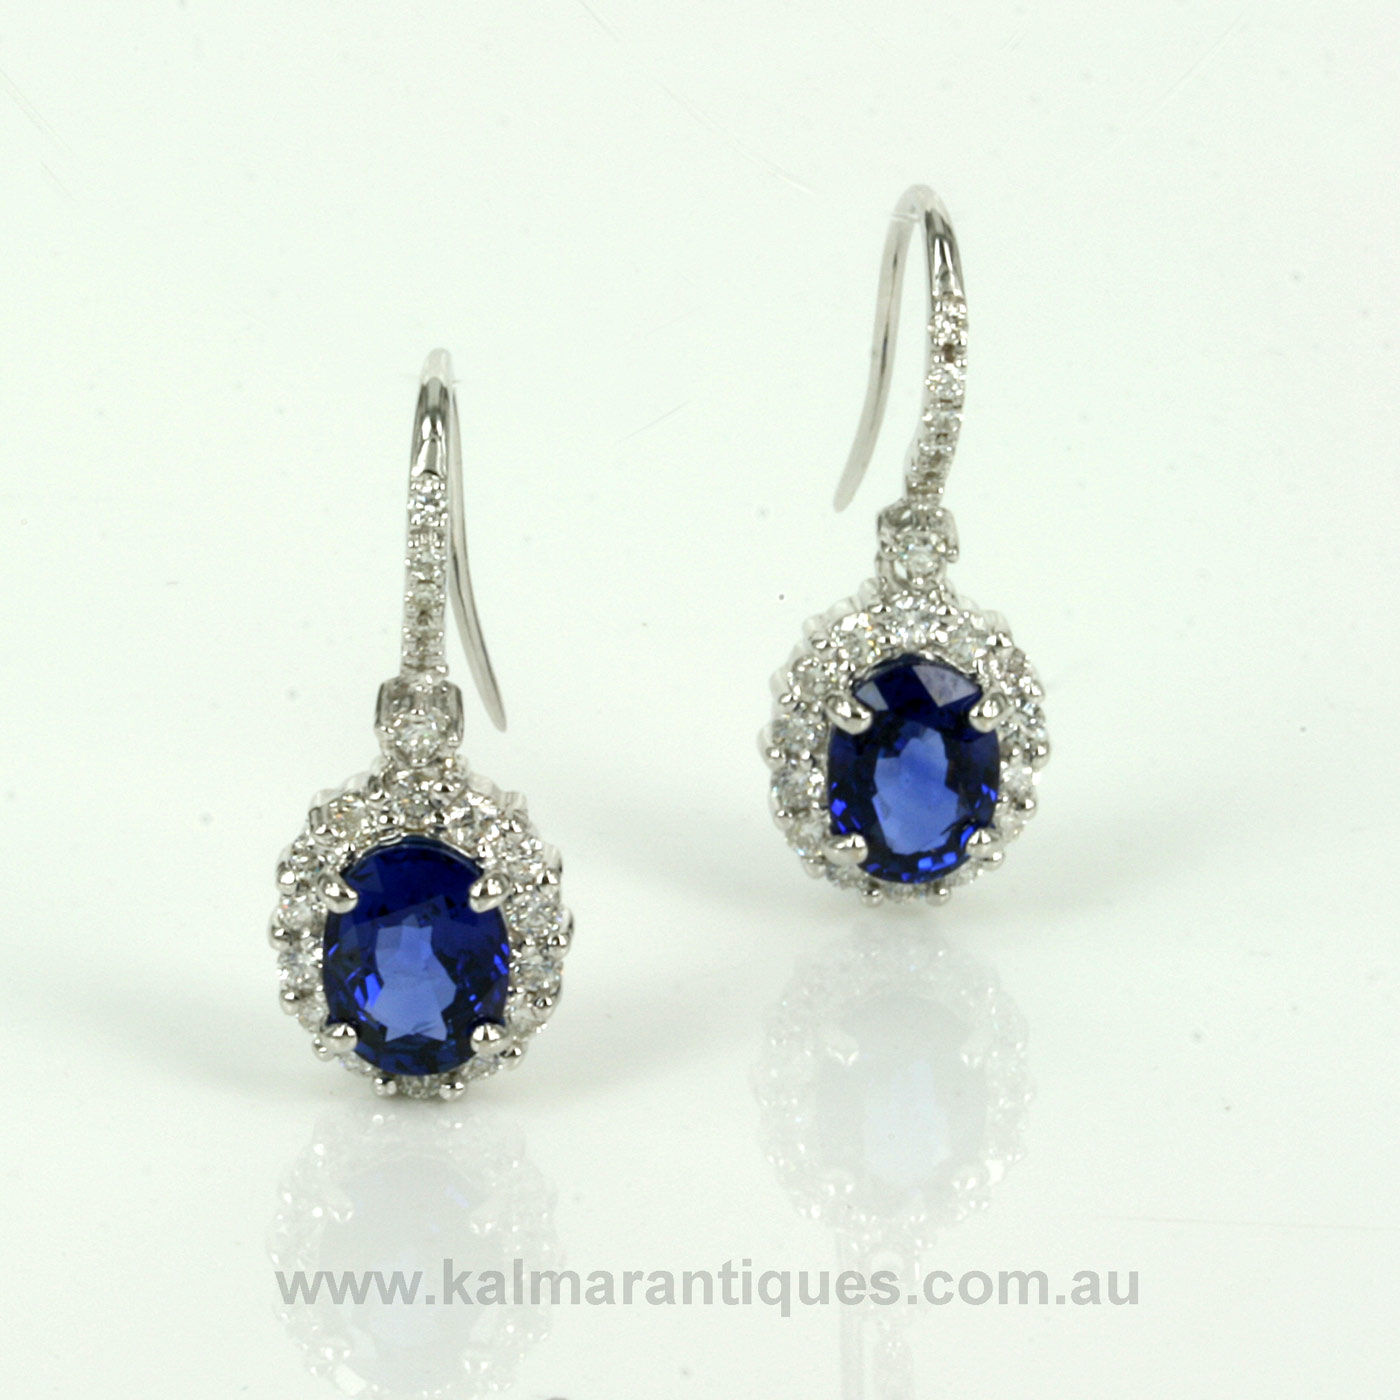 Buy 3 15 carats Ceylonese sapphire and diamond drop earrings Sold Items Sold